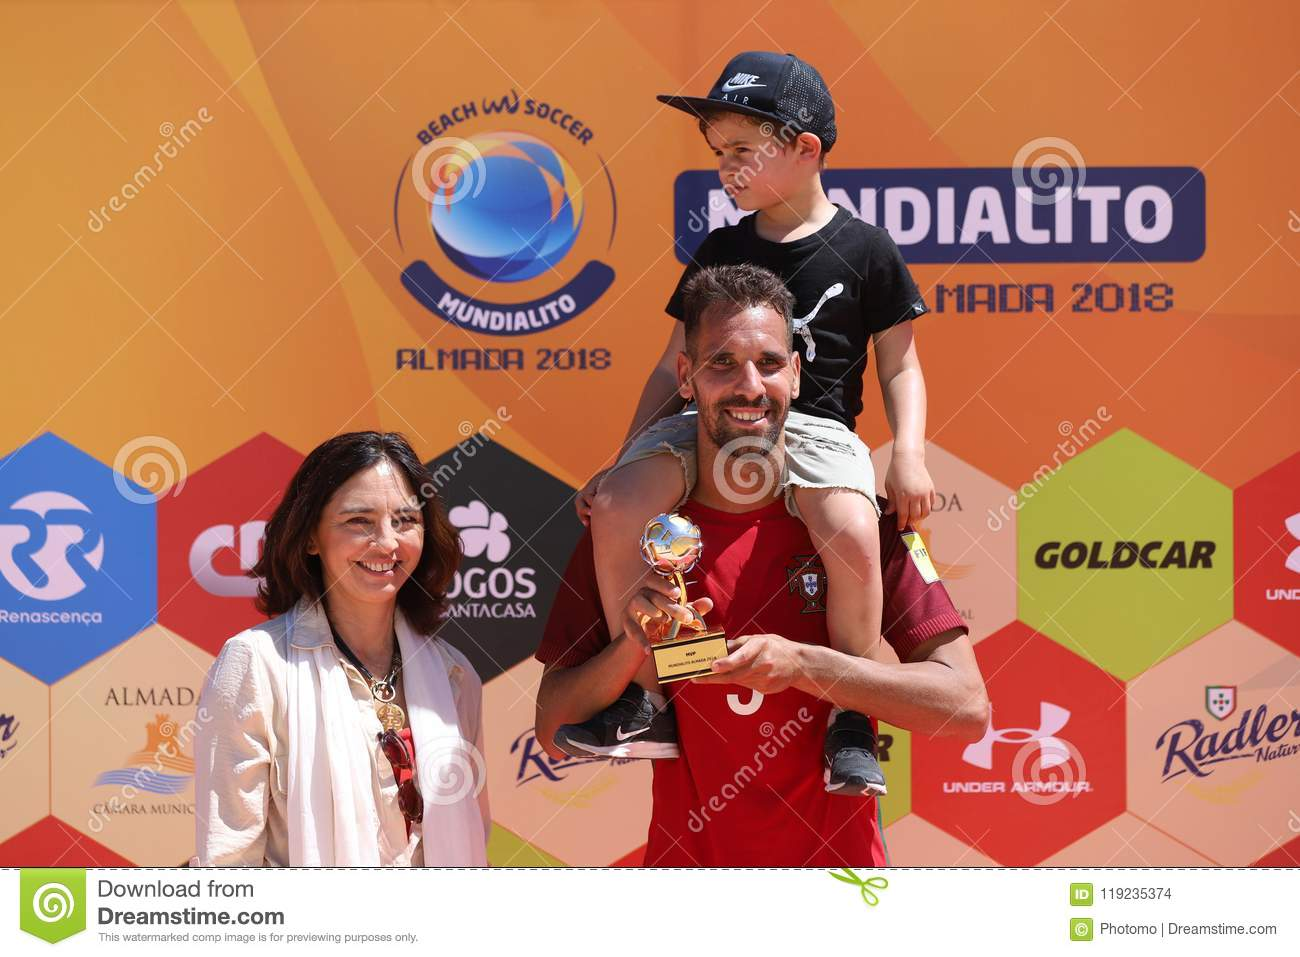 beach soccer mundialito mvp award editorial stock image image of